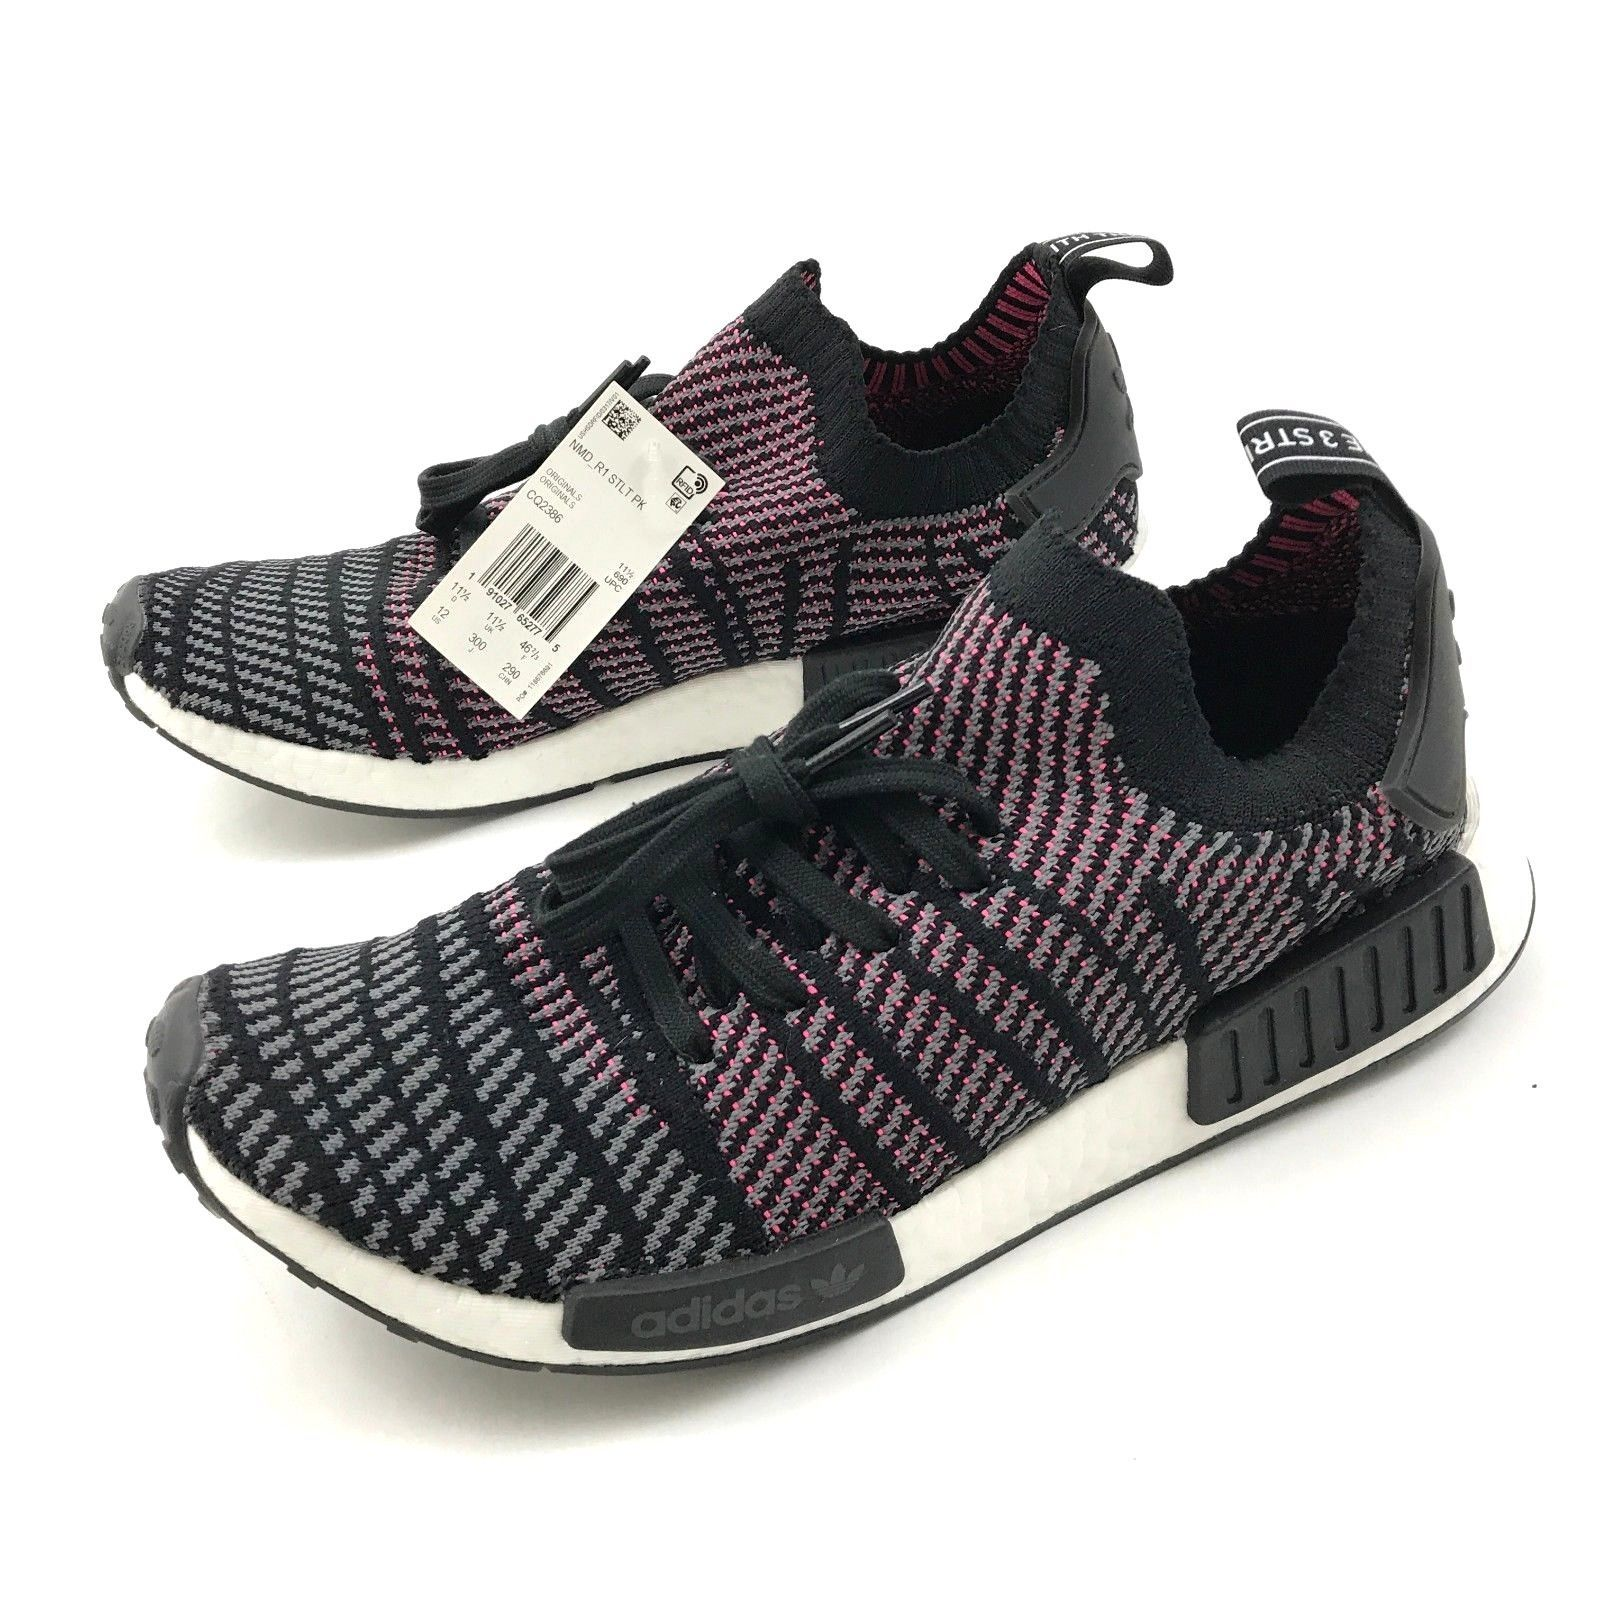 new product utterly stylish hot sales Adidas BOOST NMD R1 Shoes Mens Size 12 Low and 50 similar items